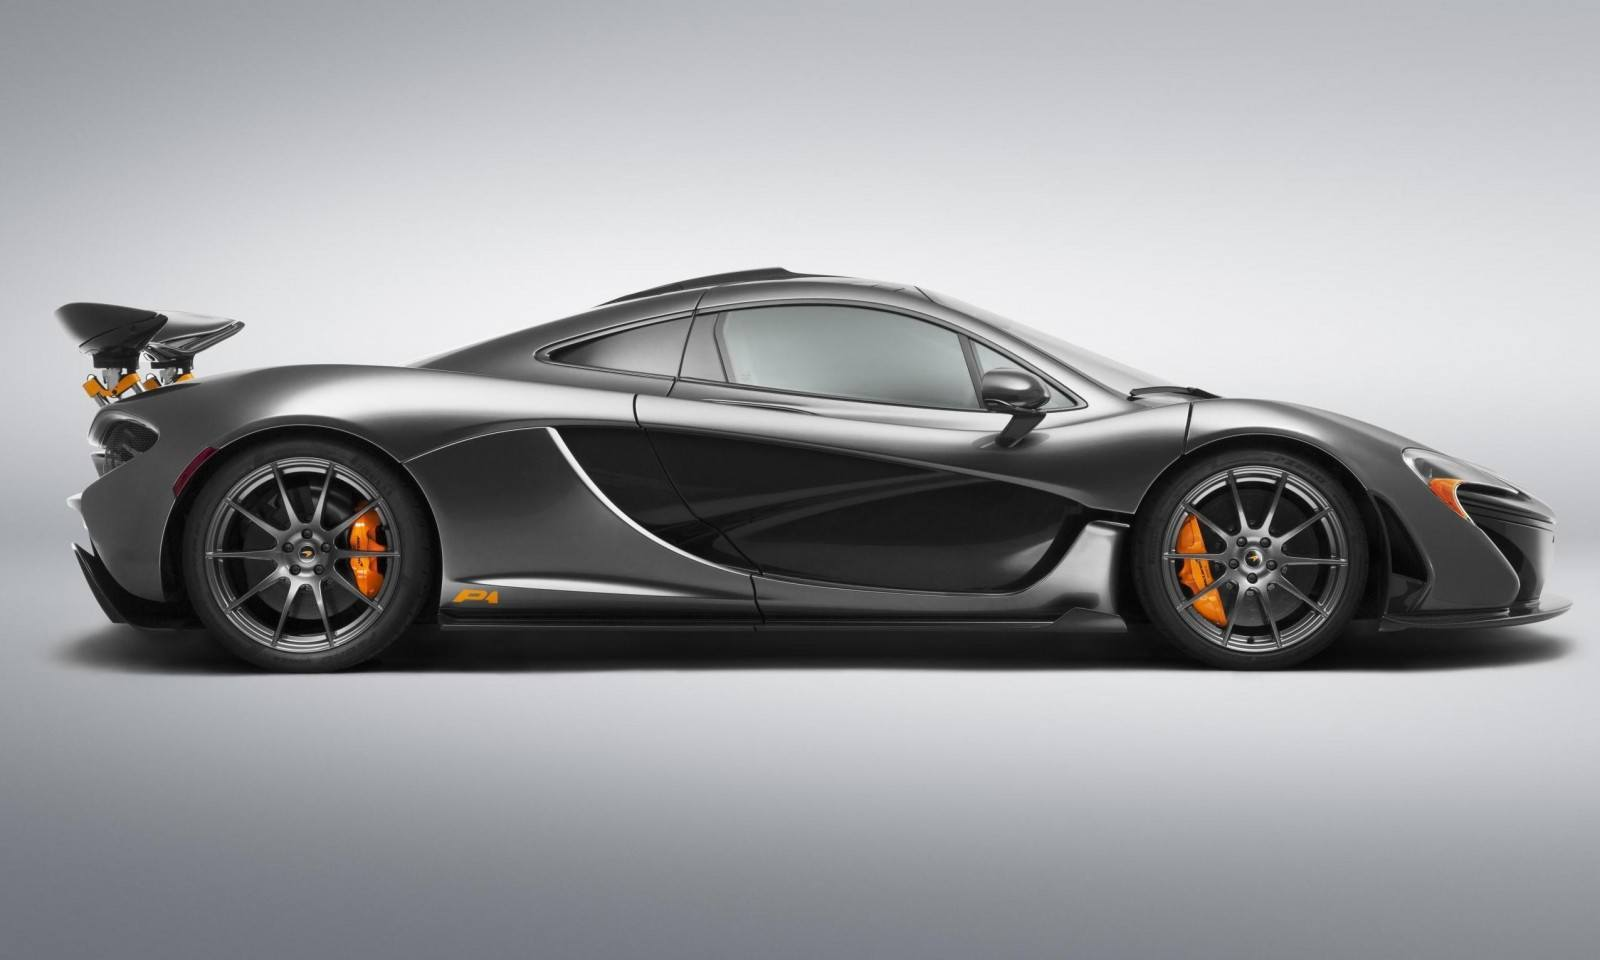 McLaren Special Operations Confirms Pebble Beach Debut of MSO 650S Spider and MSO P1 13